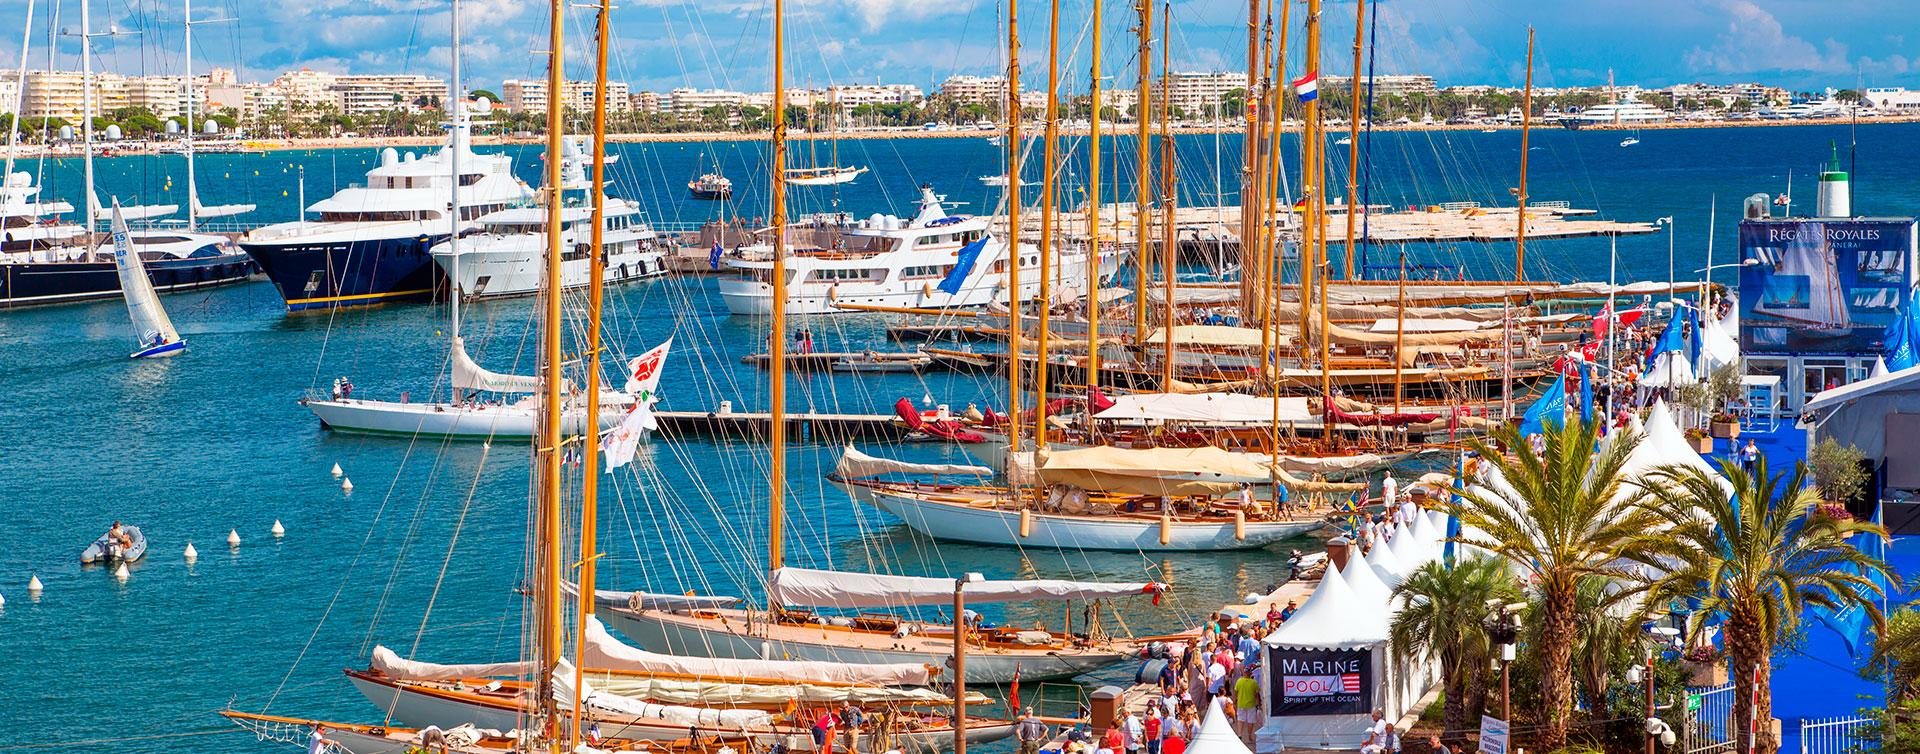 Cannes Yachting Festival 2021 rentals